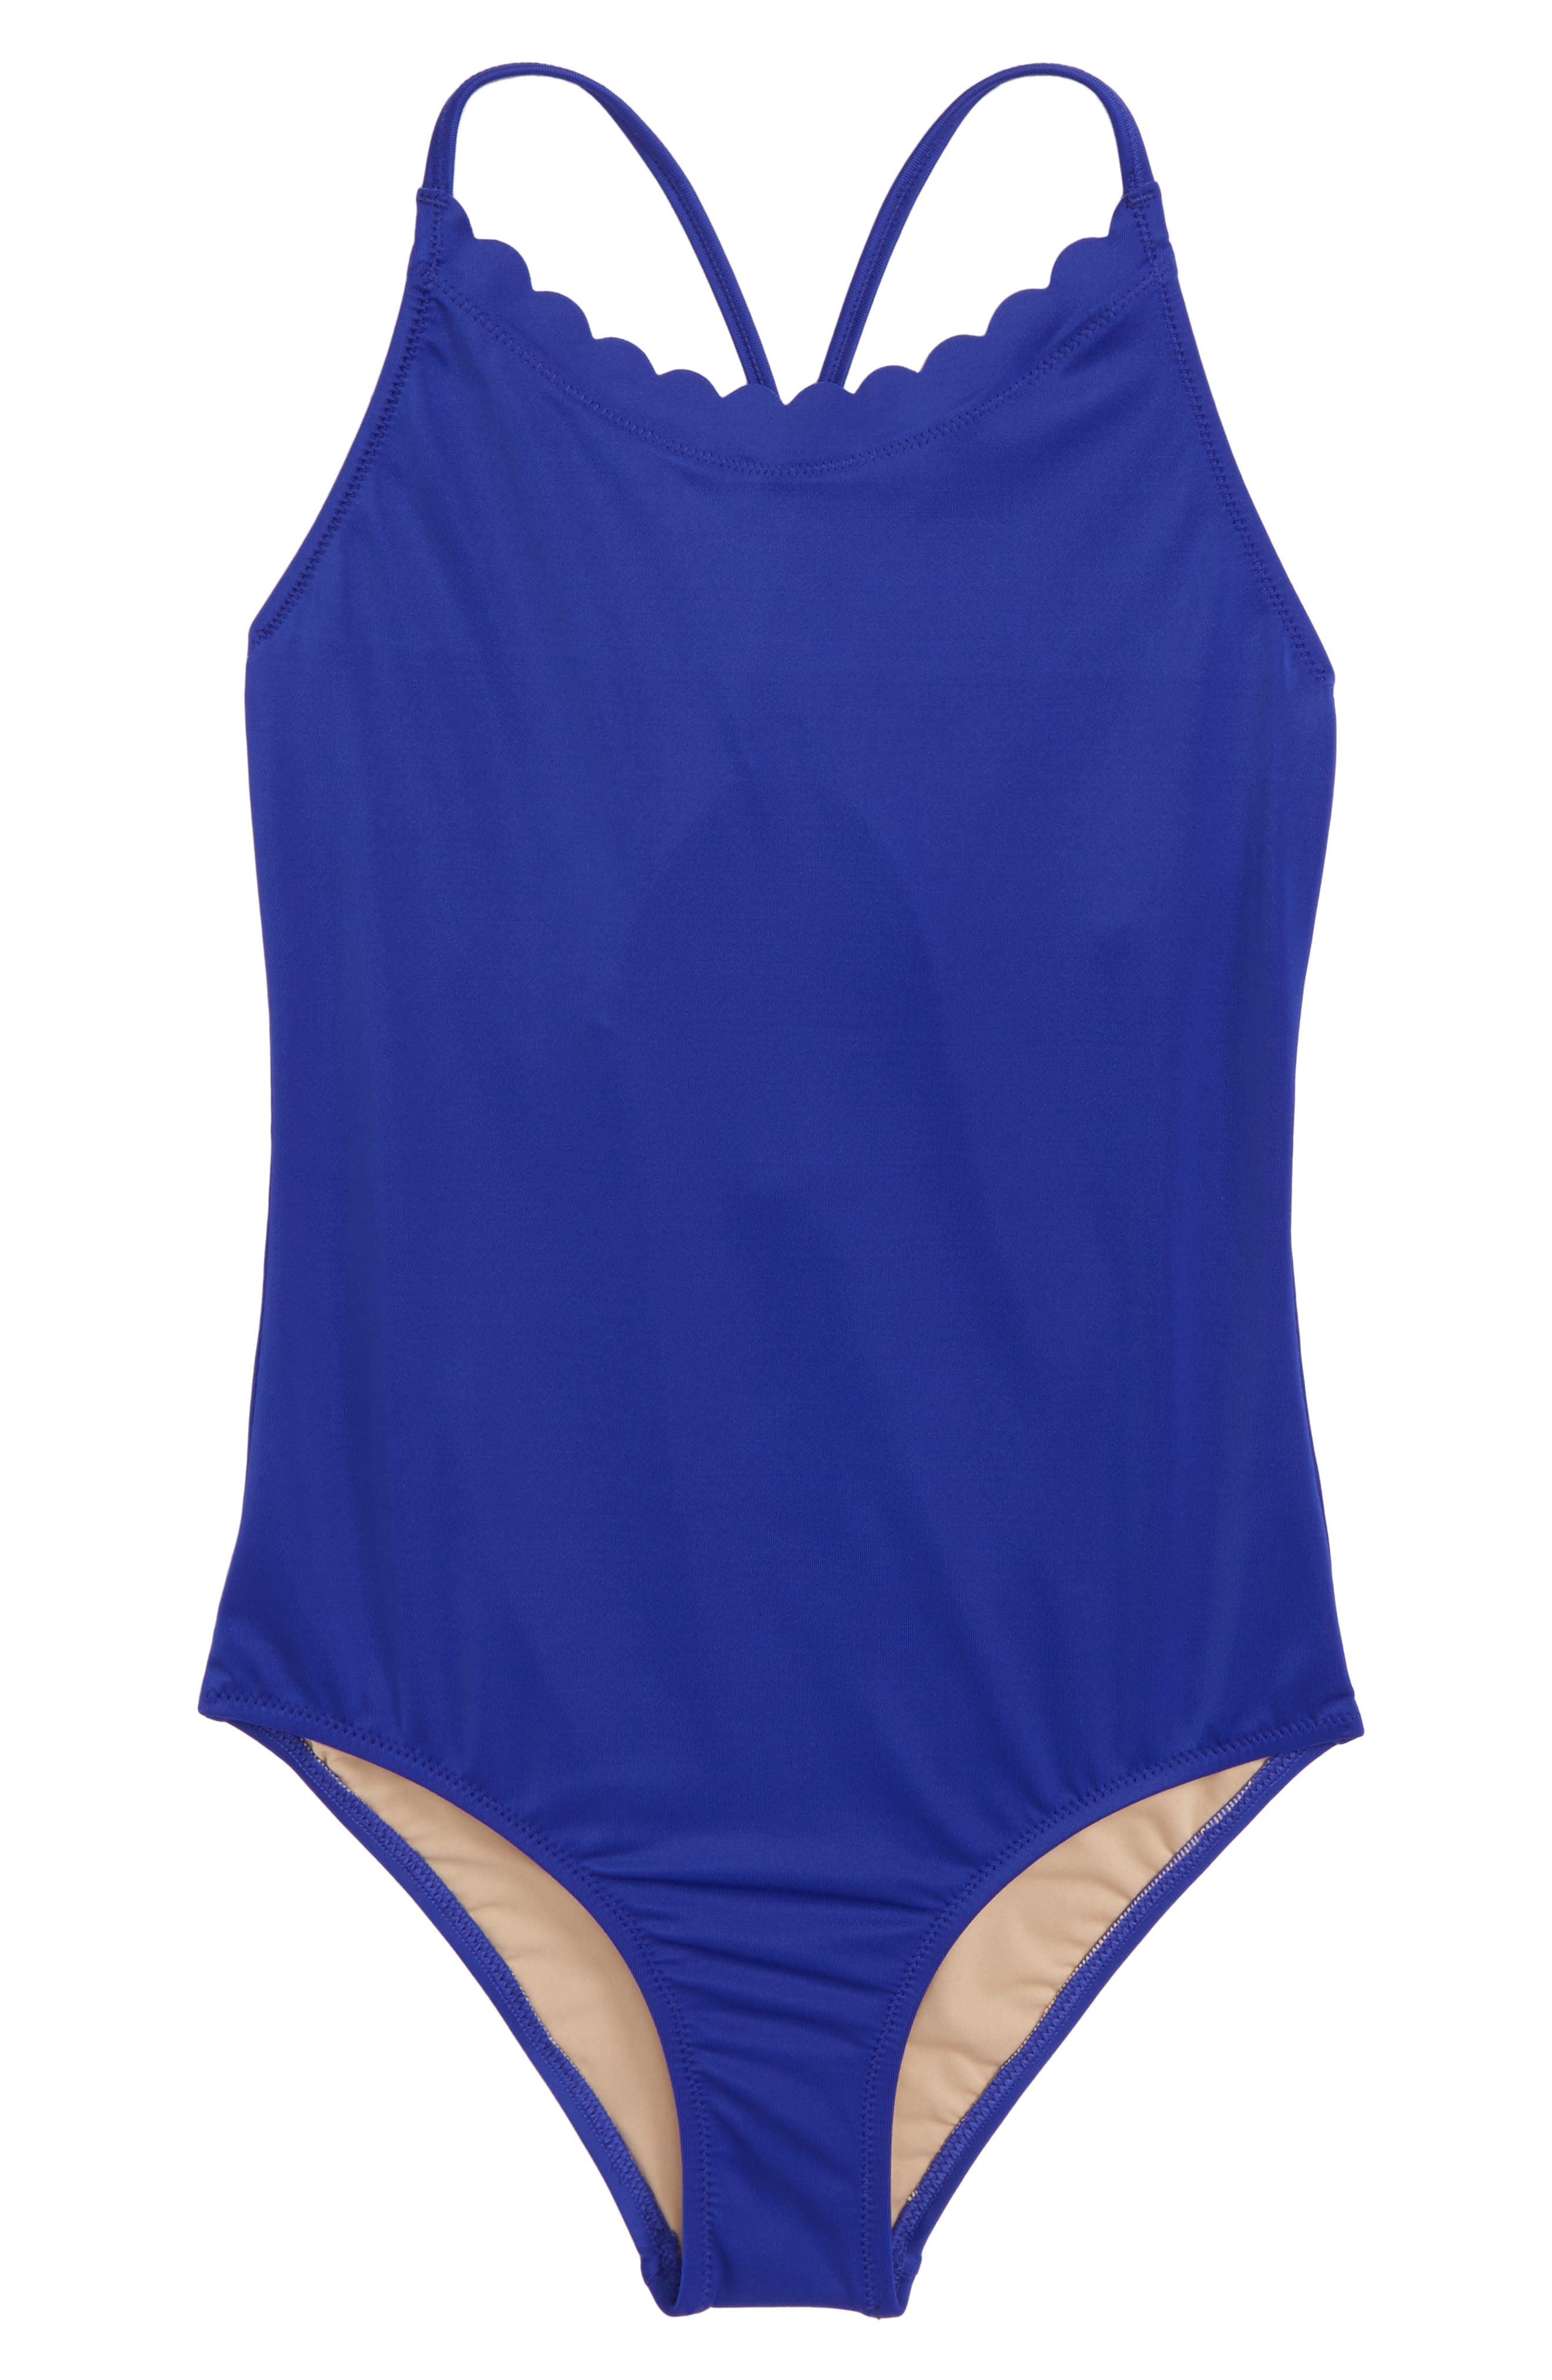 crewcuts by J.Crew Scalloped One-Piece Swimsuit (Toddler Girls, Little Girls & Big Girls)